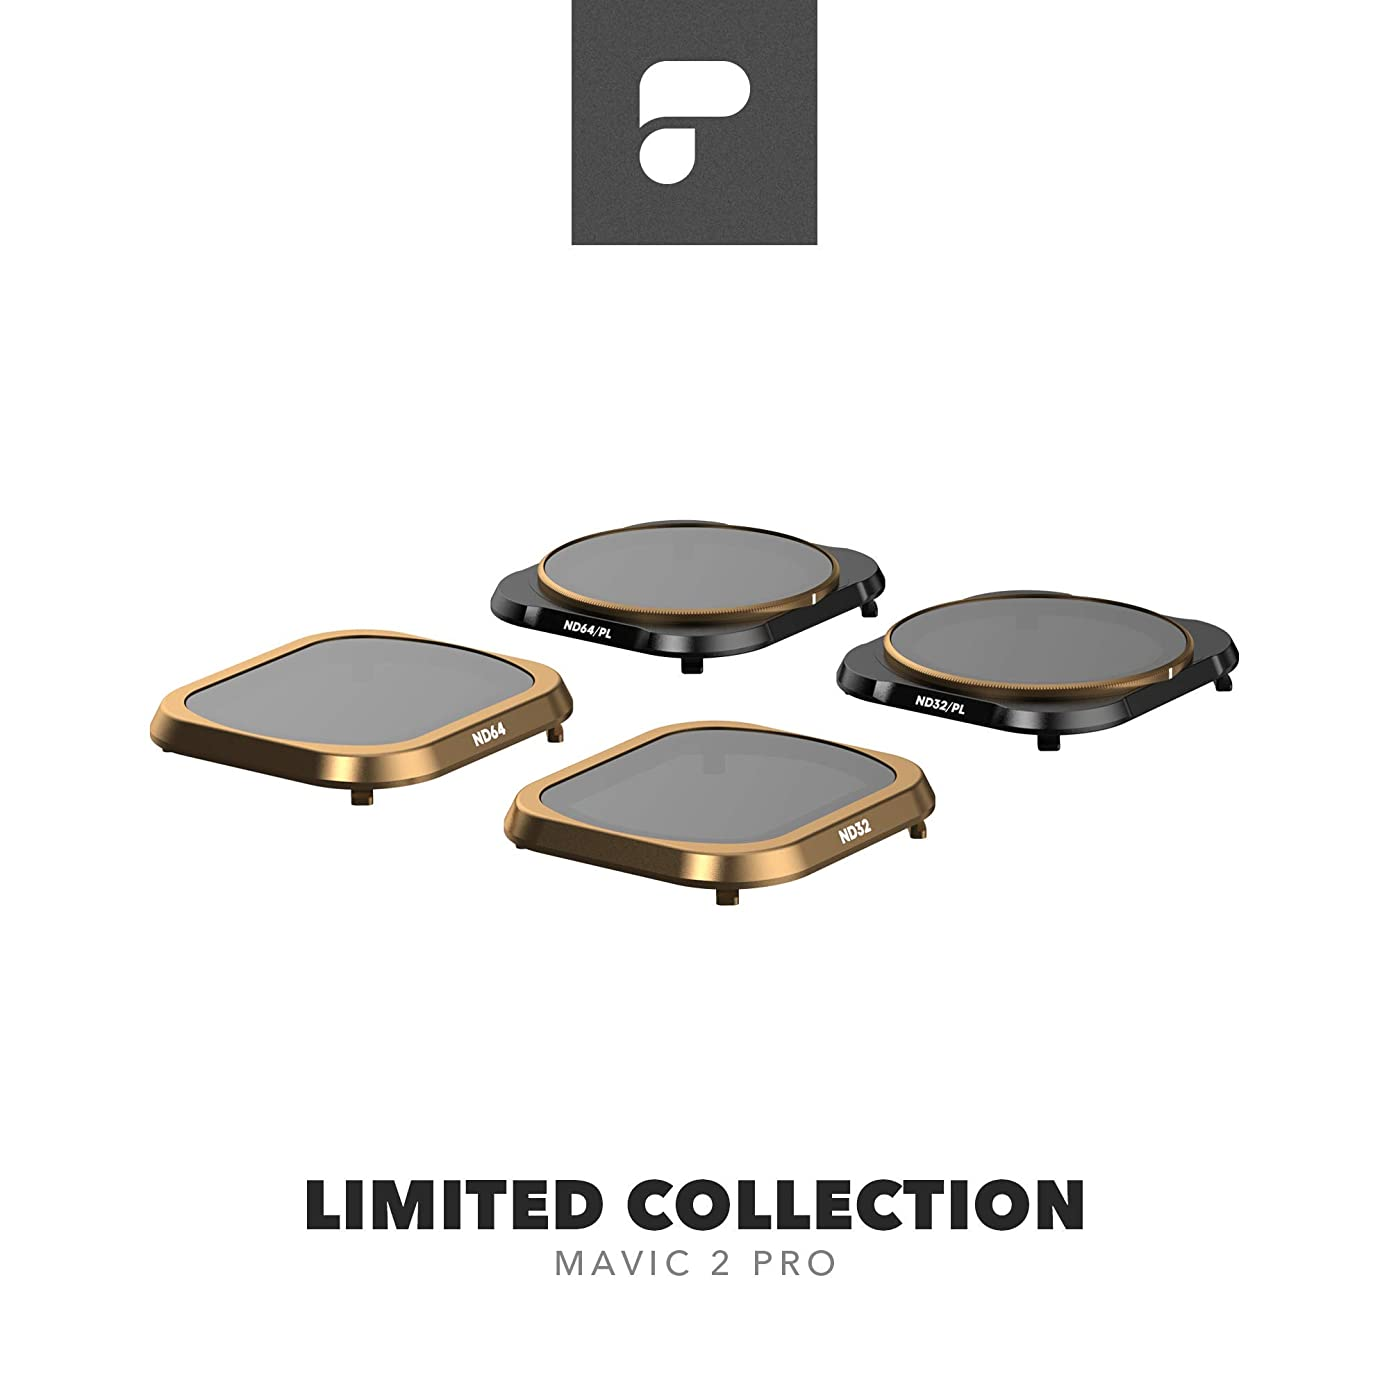 PolarPro Limited Filter Collection (ND32, ND64, ND32/PL, ND64/PL DJI Mavic 2 Filters) for DJI Mavic 2 Pro